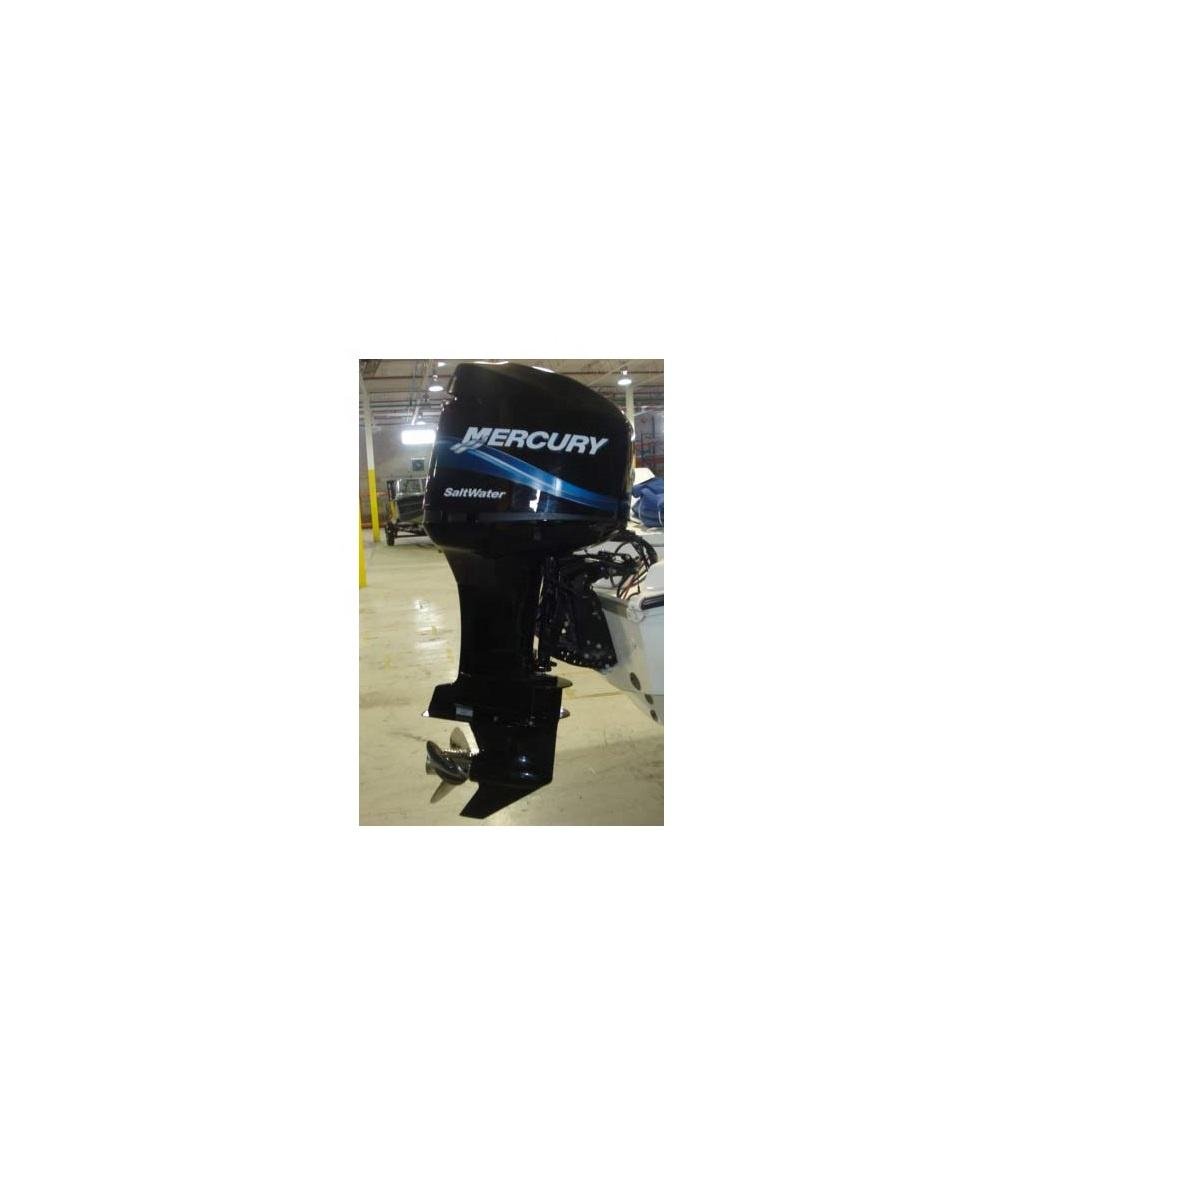 Marine & New Use Model 4 Outboard Engines Used Marine Engines for Sale